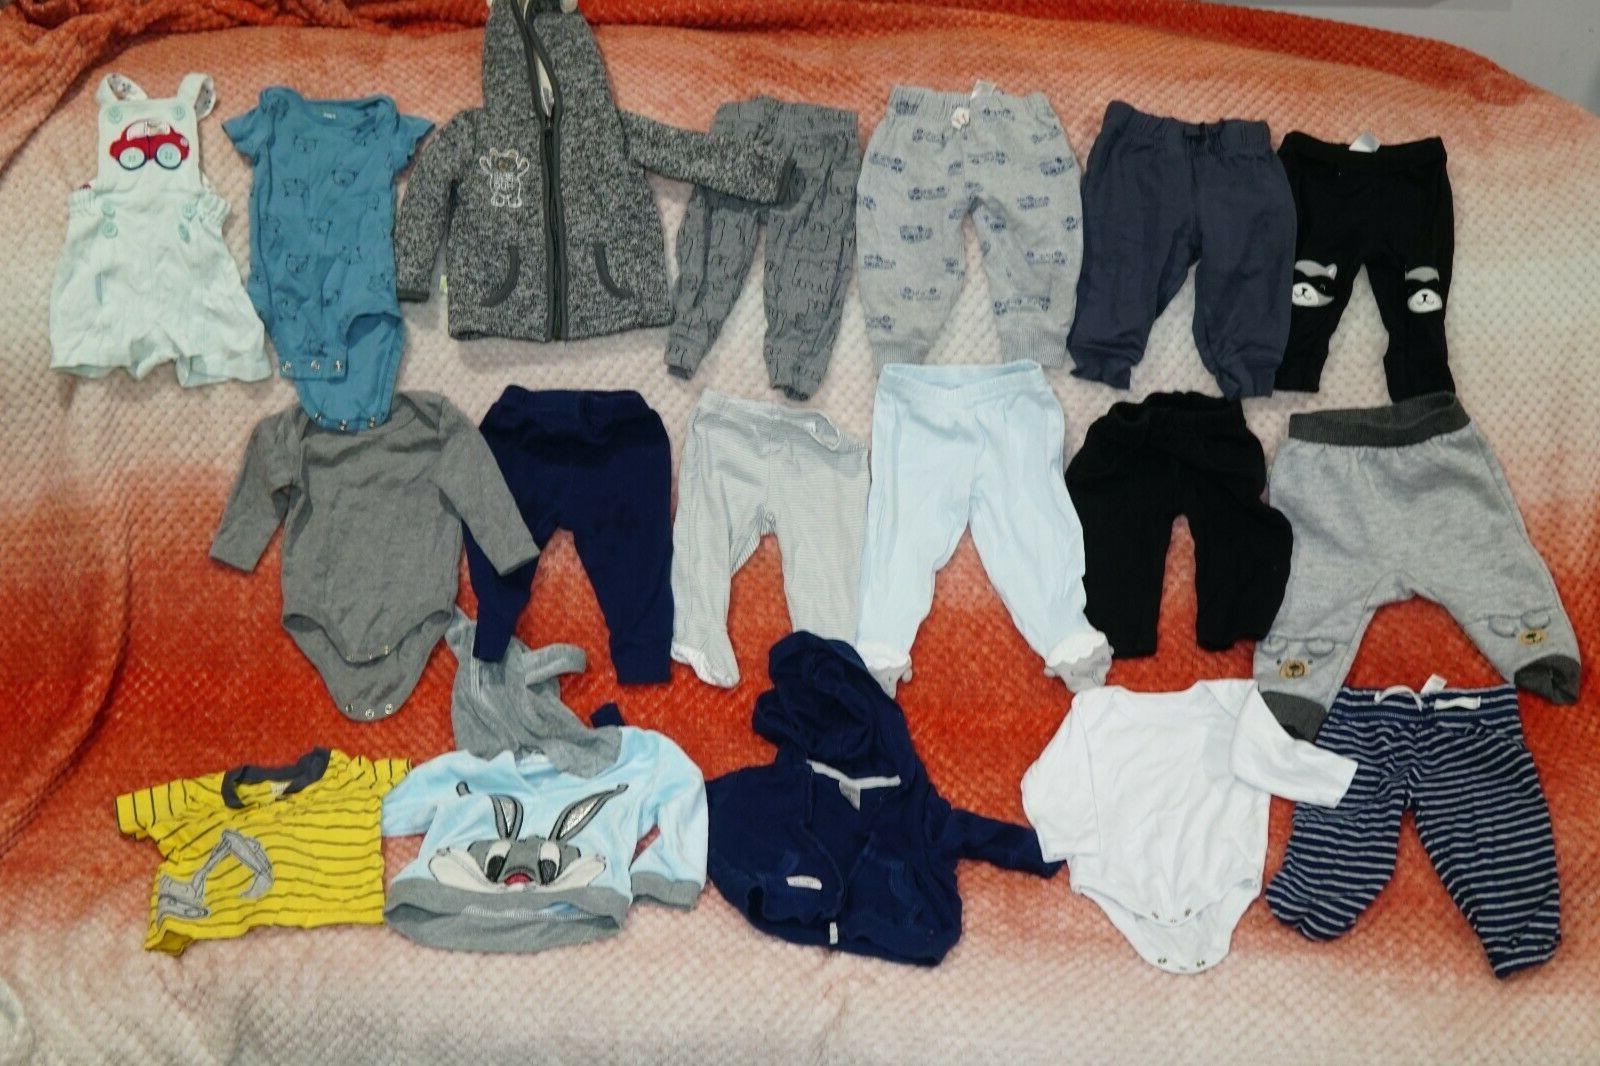 Huge Lot Over 80 Piece Baby Boys Clothing and Accessories Up